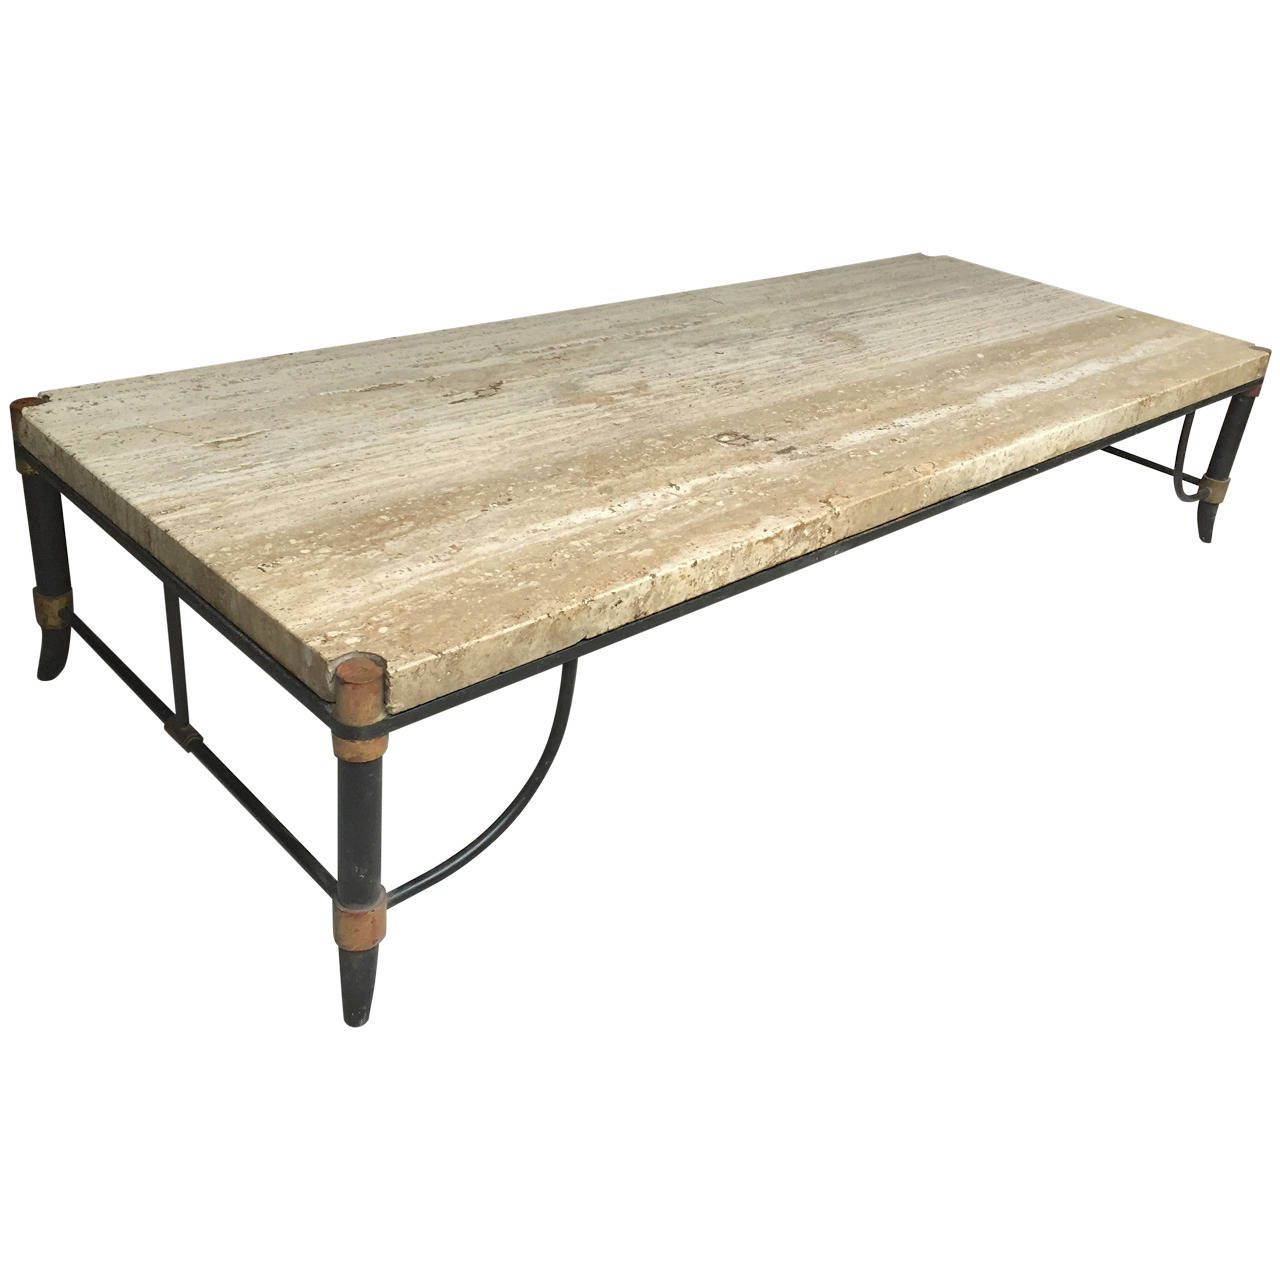 Unusual Cocktail Tables Italian Travertine Bronze And Enamel Coffee Table From